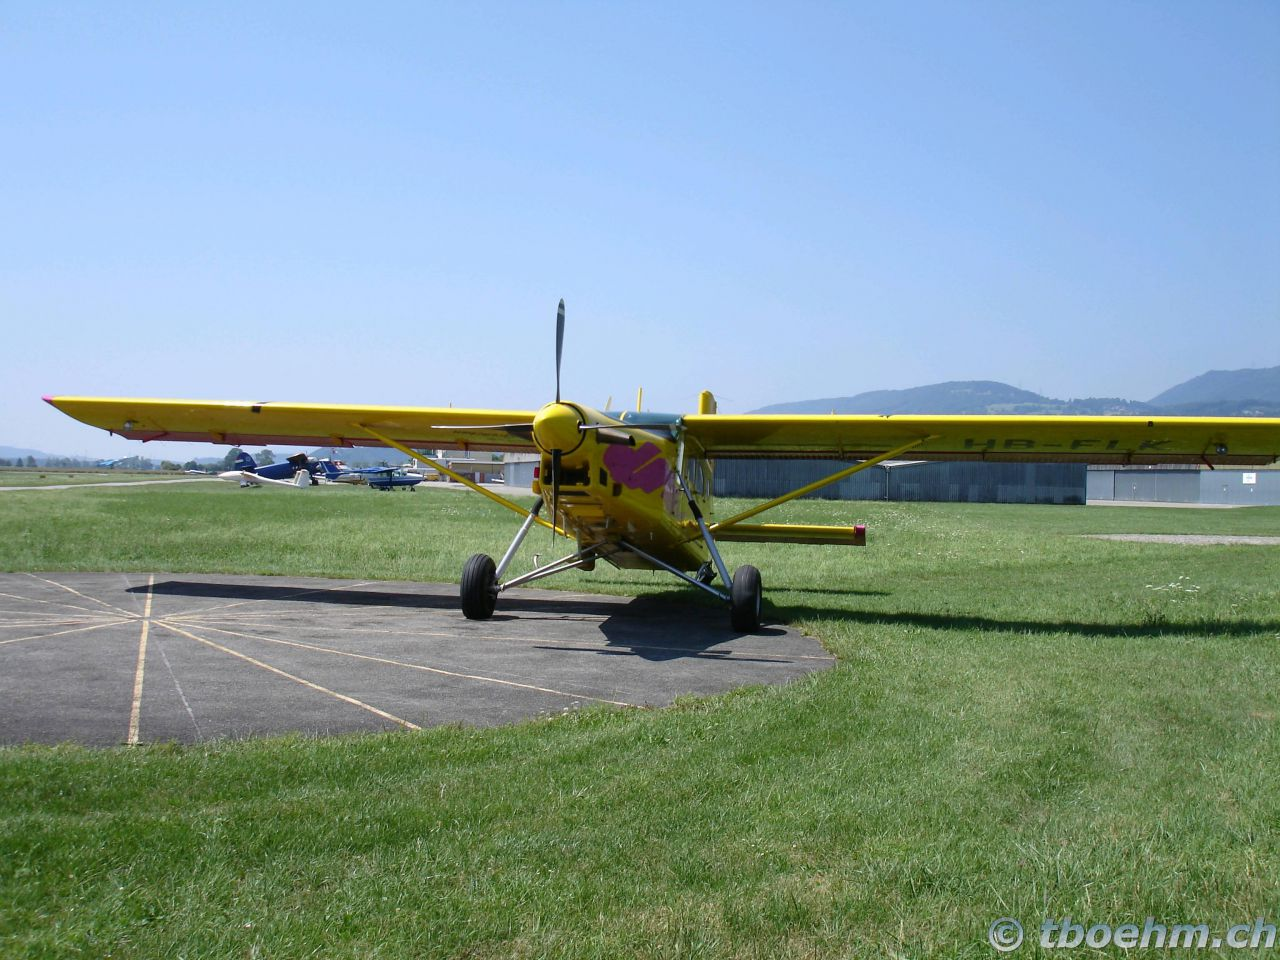 skydive_grenchen_16_07_2006_30_20121125_1203709159